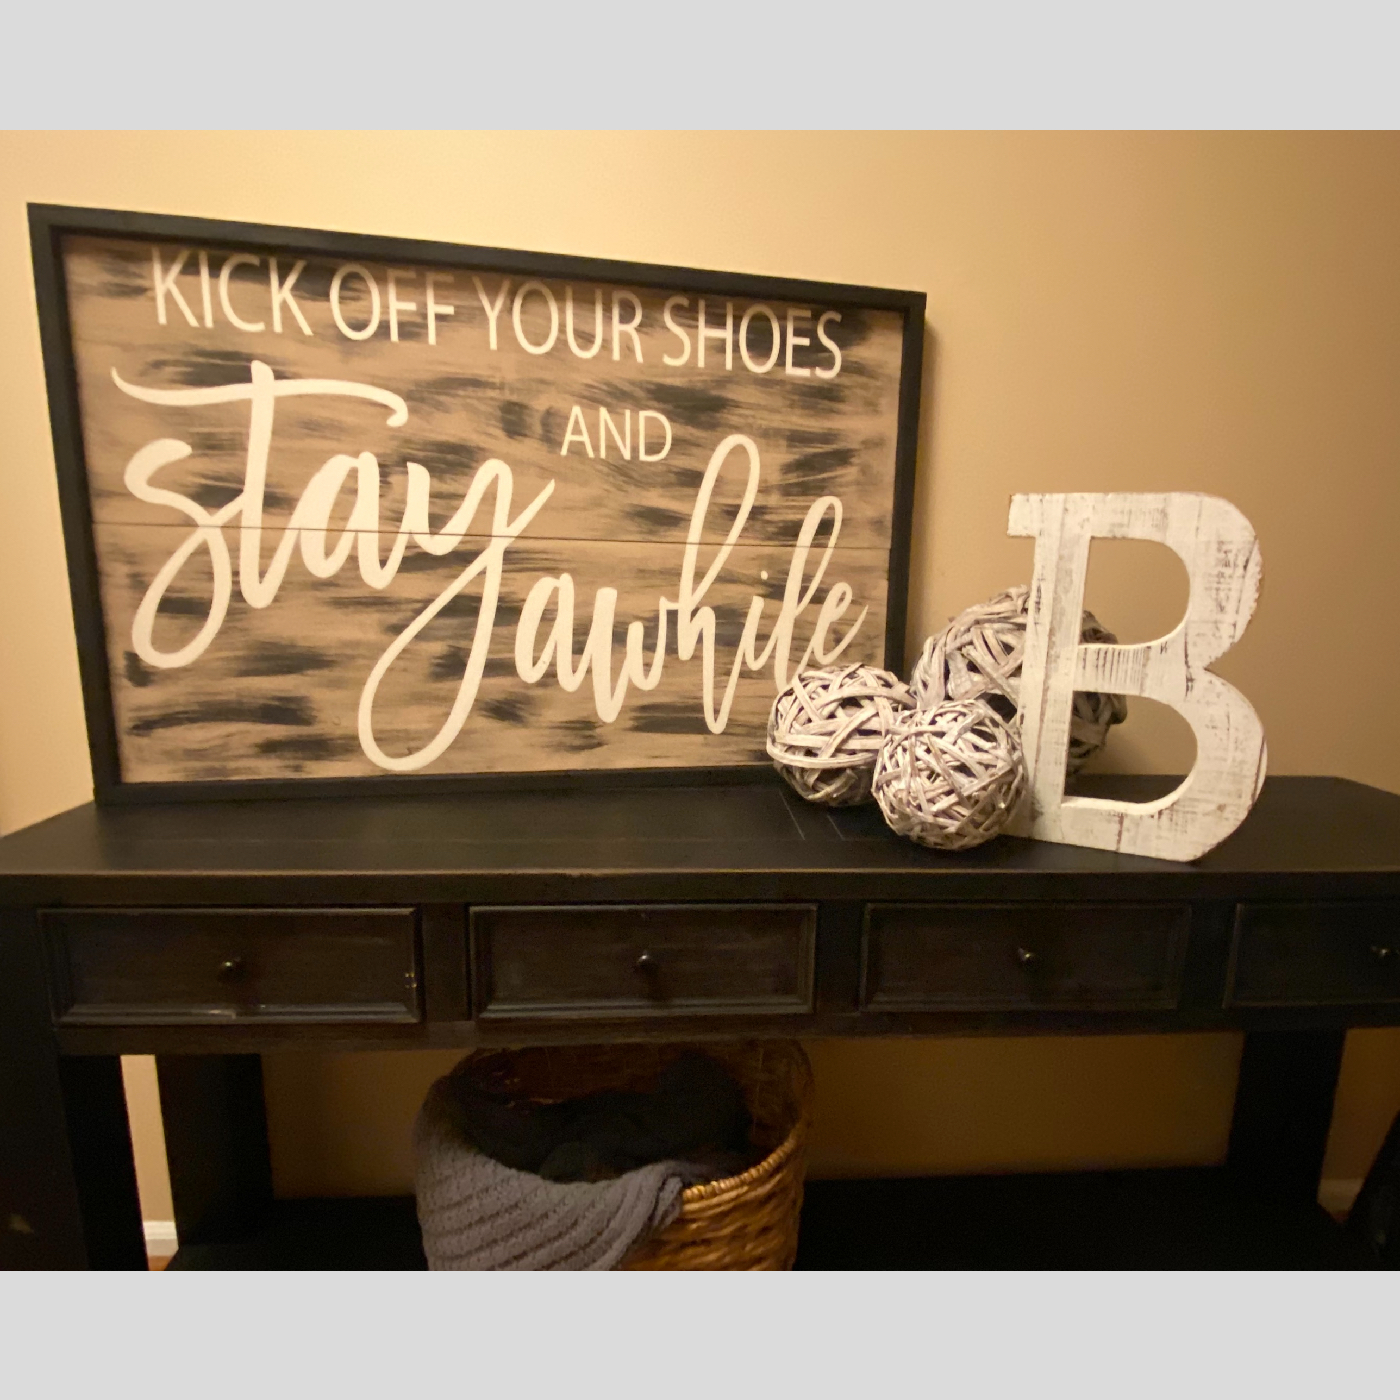 Kick Off Your Shoes and Stay Awhile DIY Wood Project Home